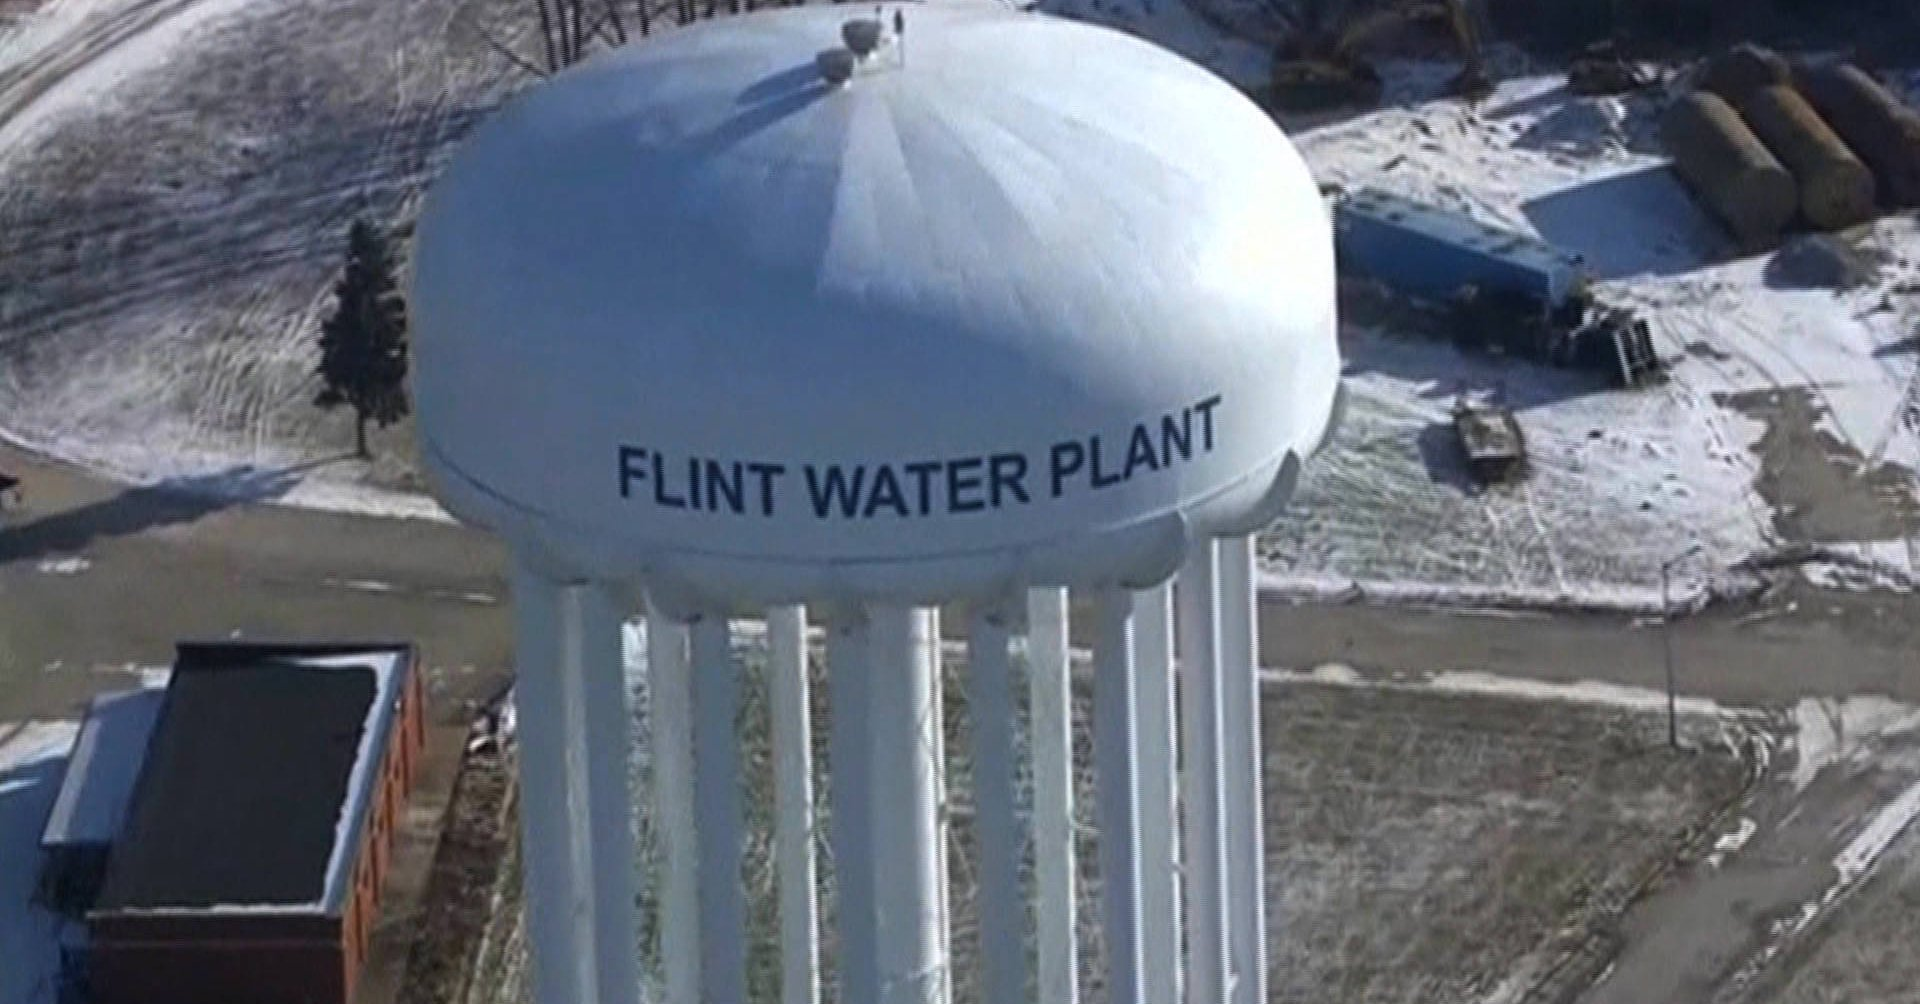 Flint Water Palnt